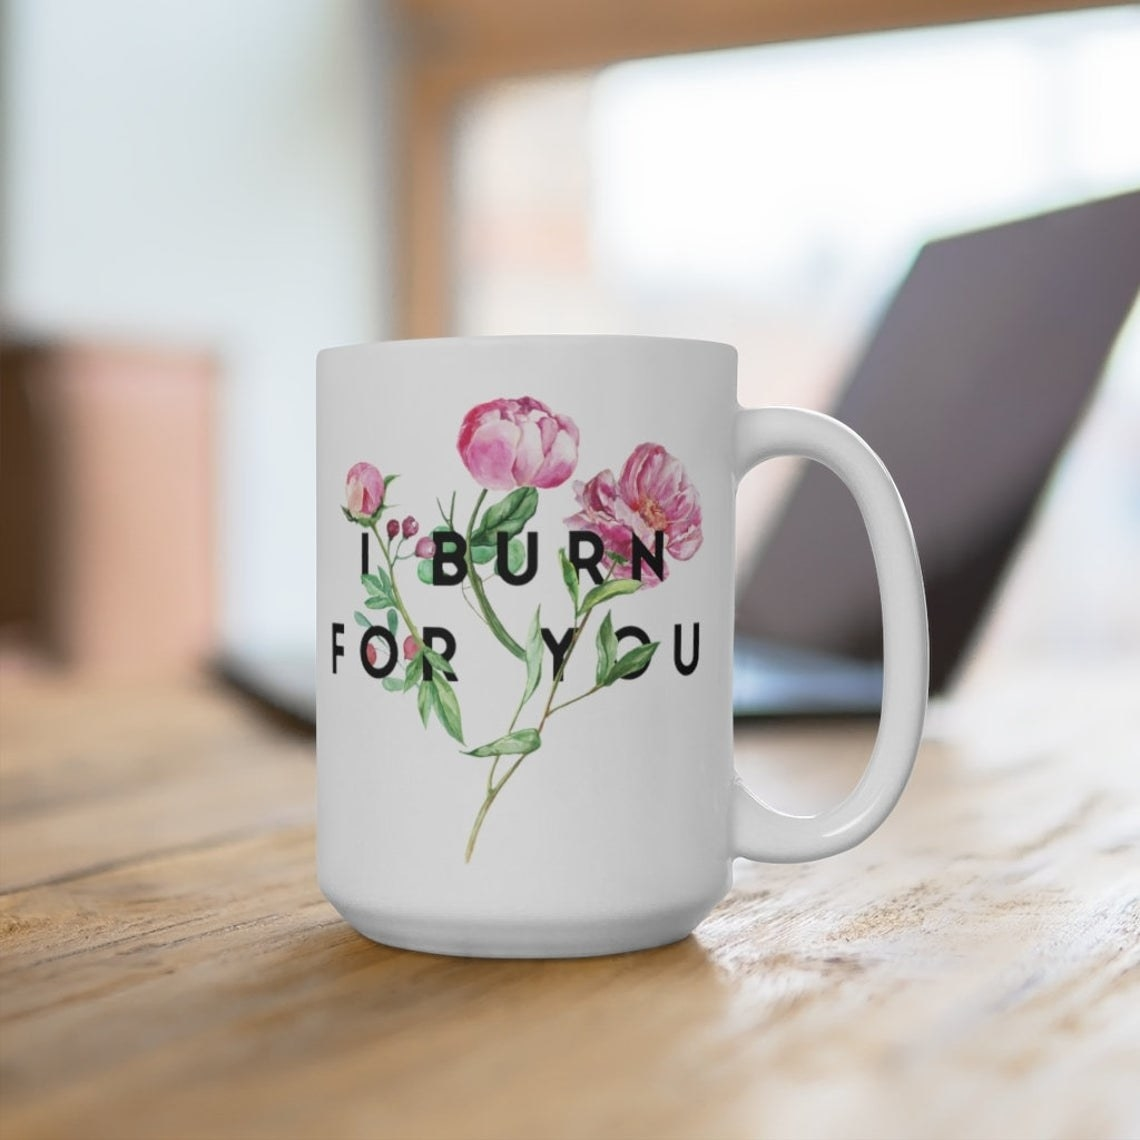 The mug on a table in front of a computer